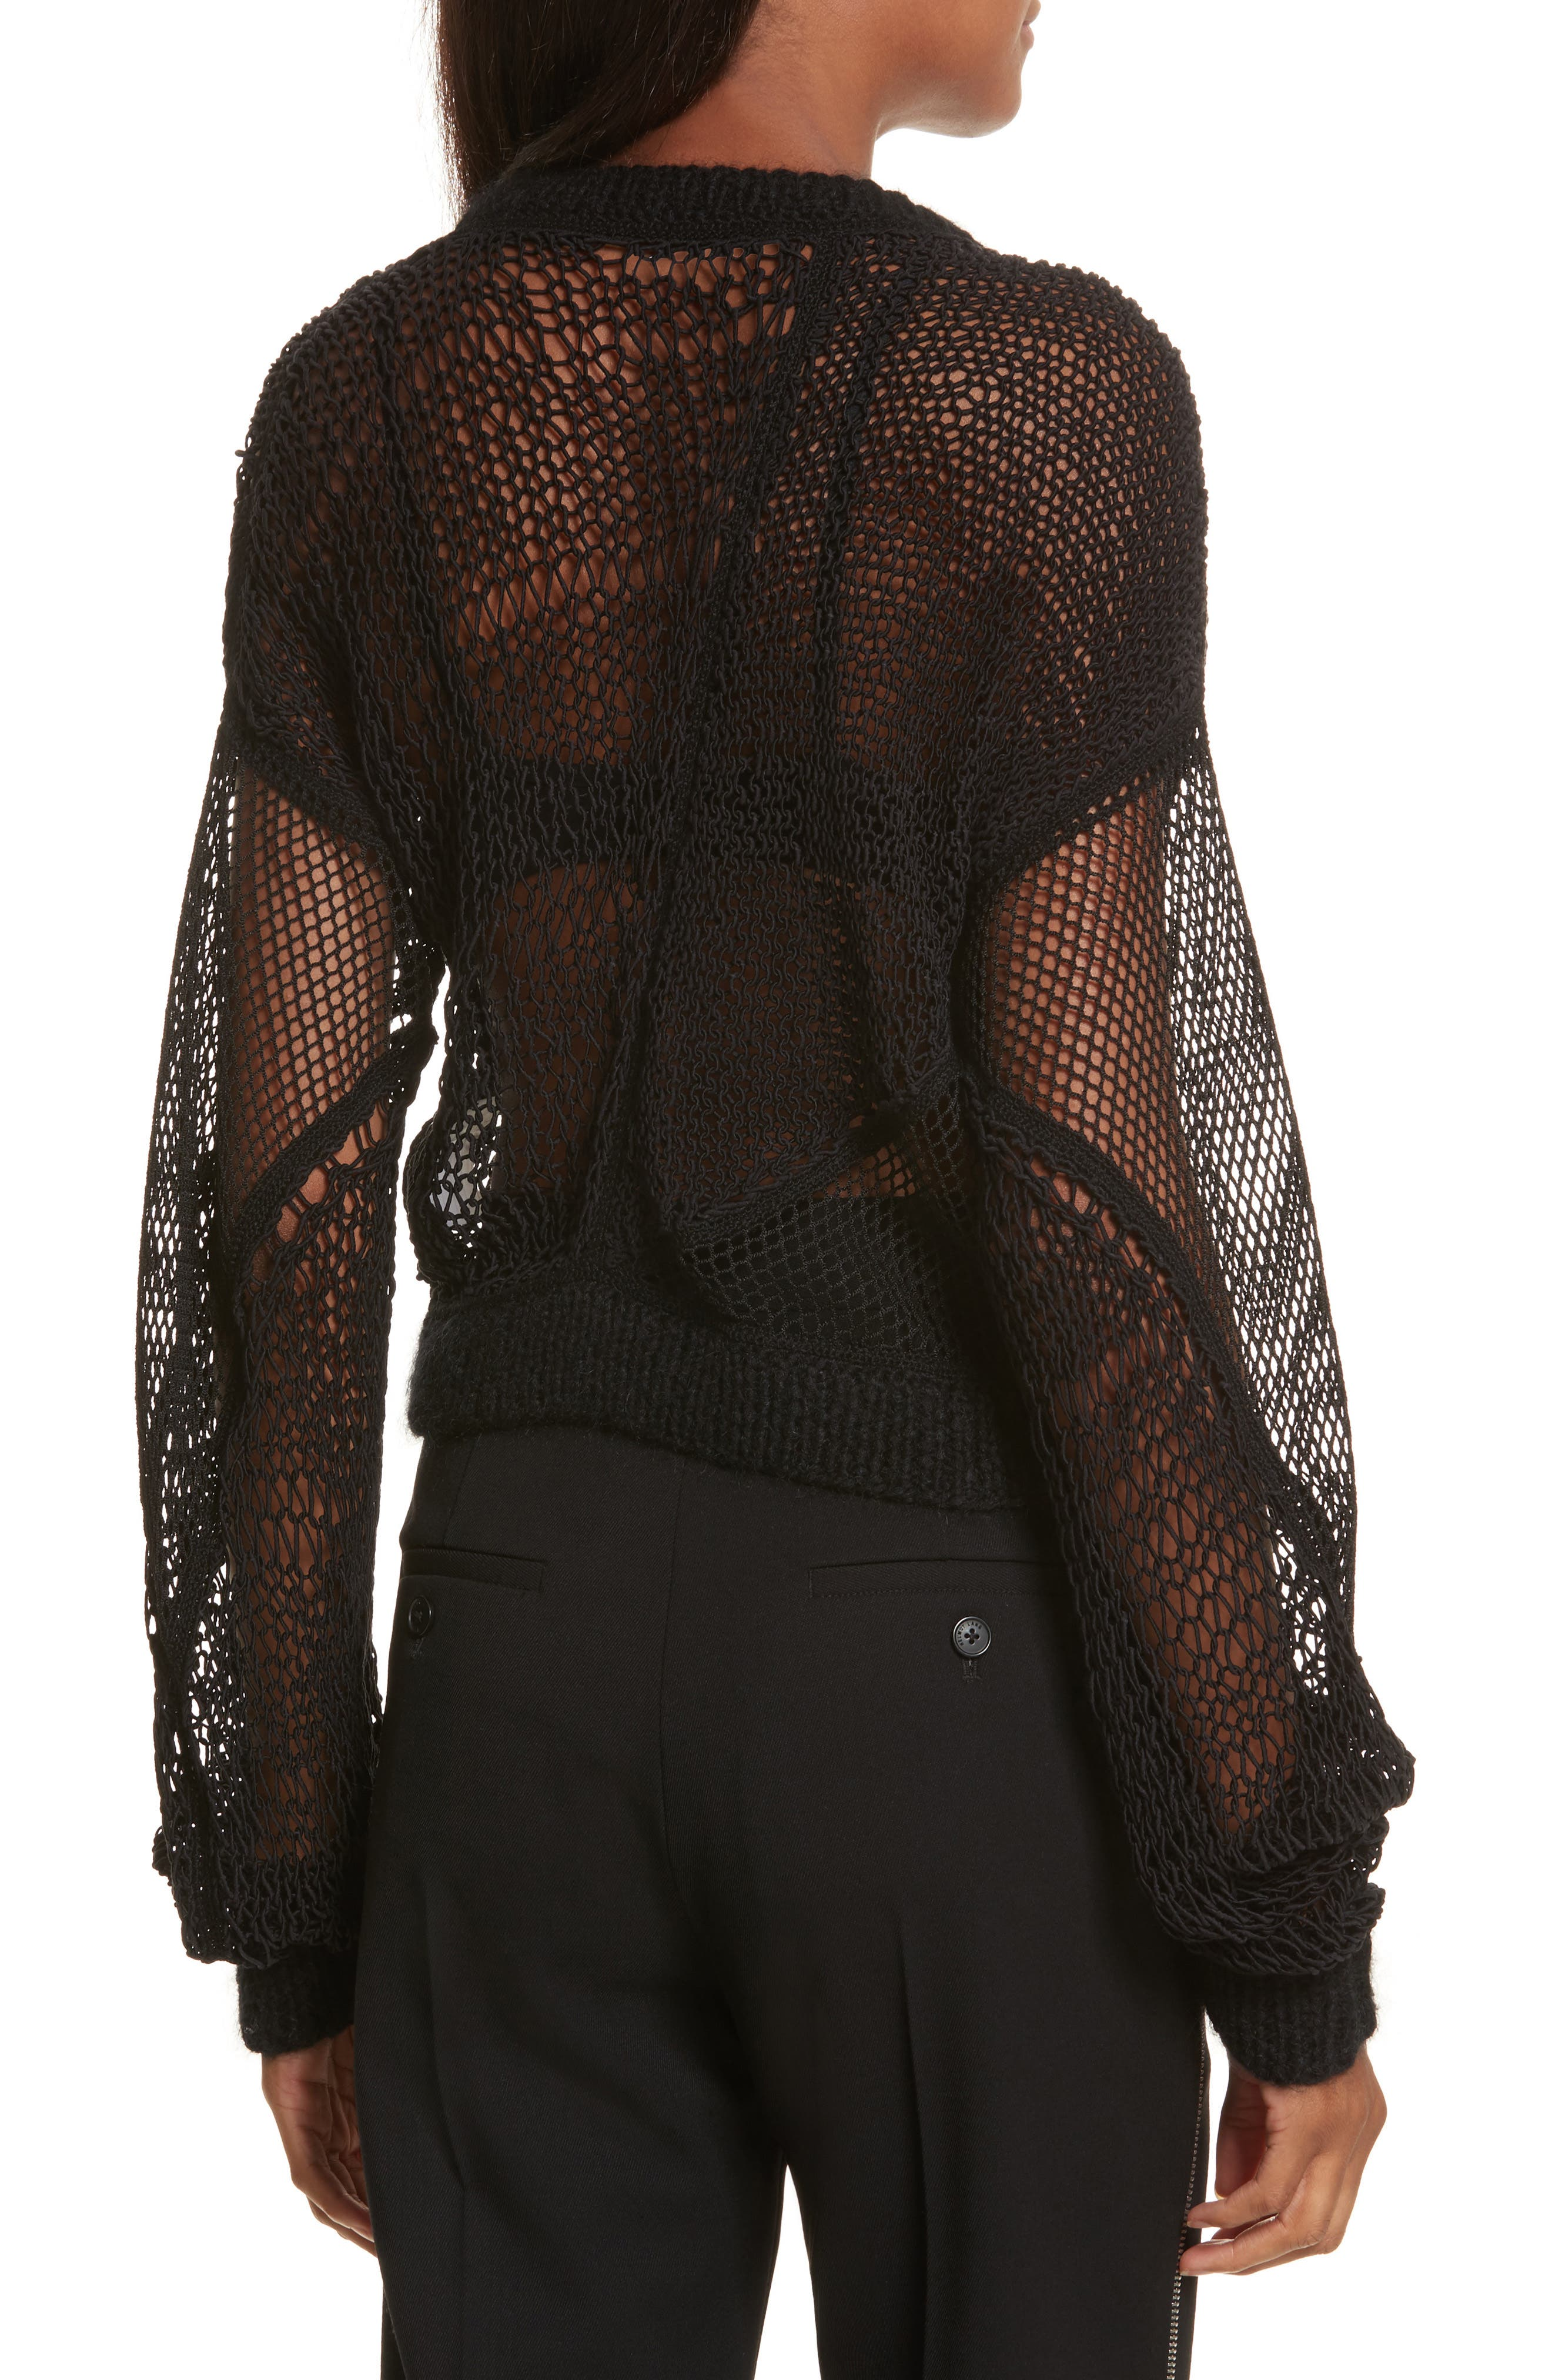 Siouxie Crew Fishnet Patchwork Sweater,                             Alternate thumbnail 2, color,                             Black